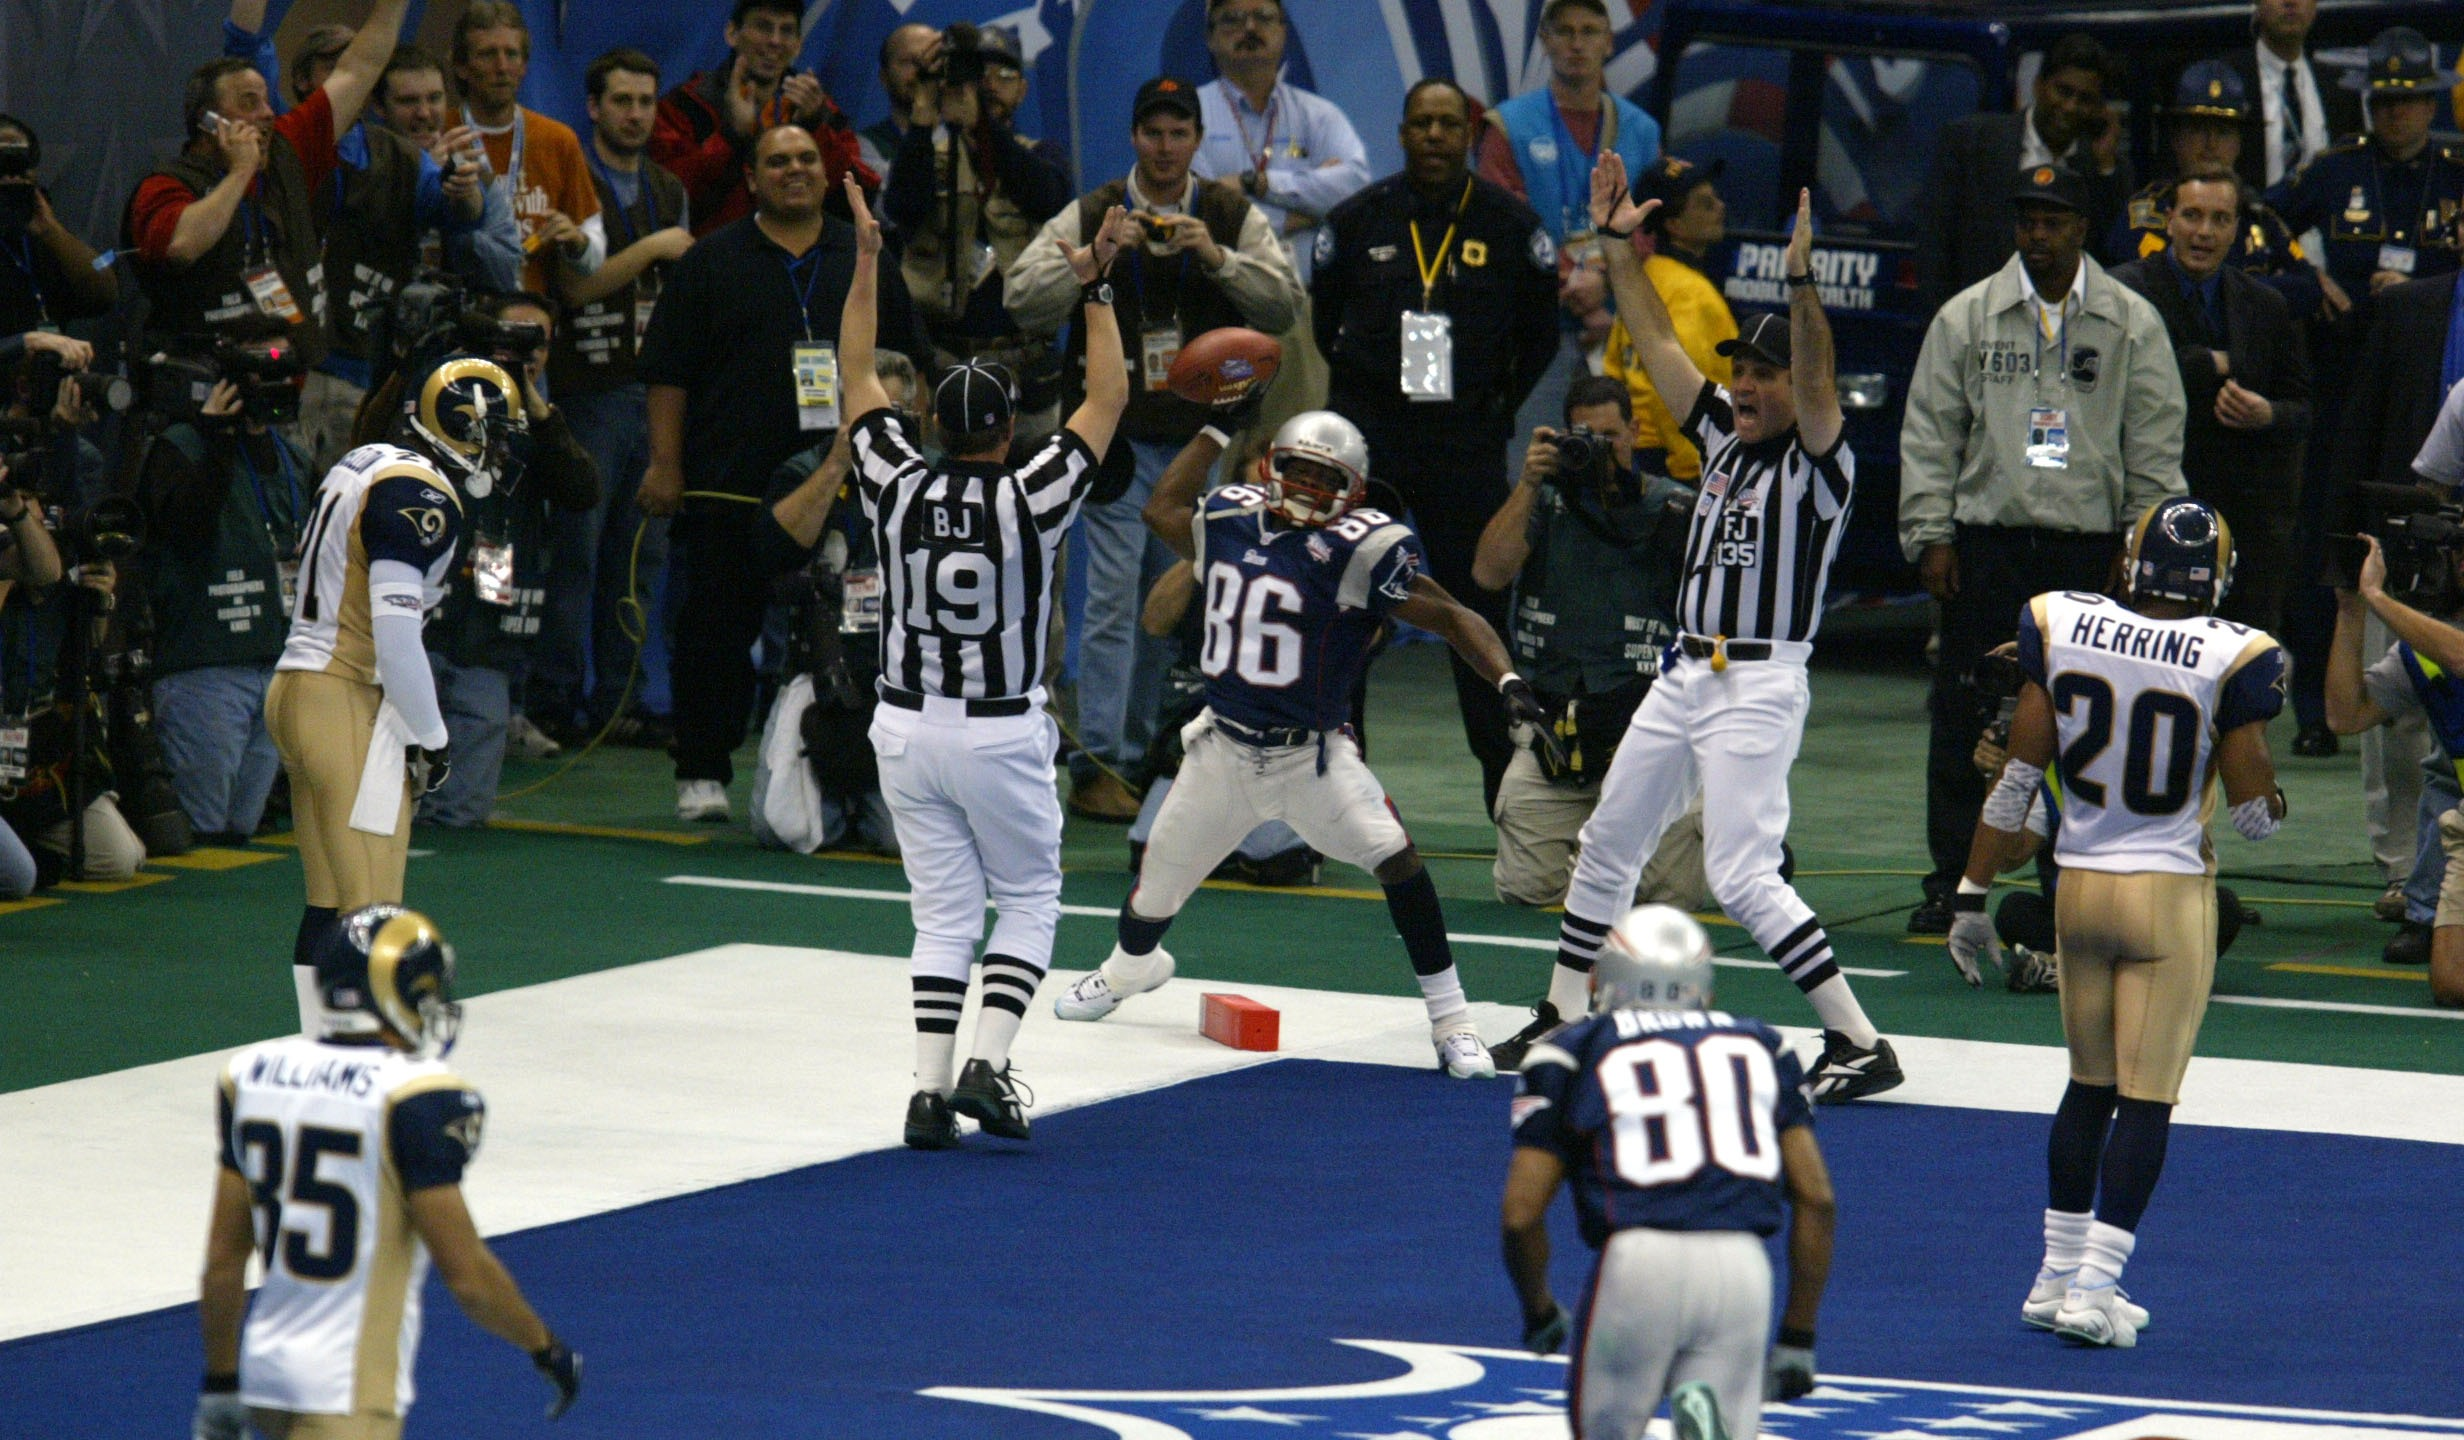 5301021P SUPERBOWL XXXVI  X_1449853369661